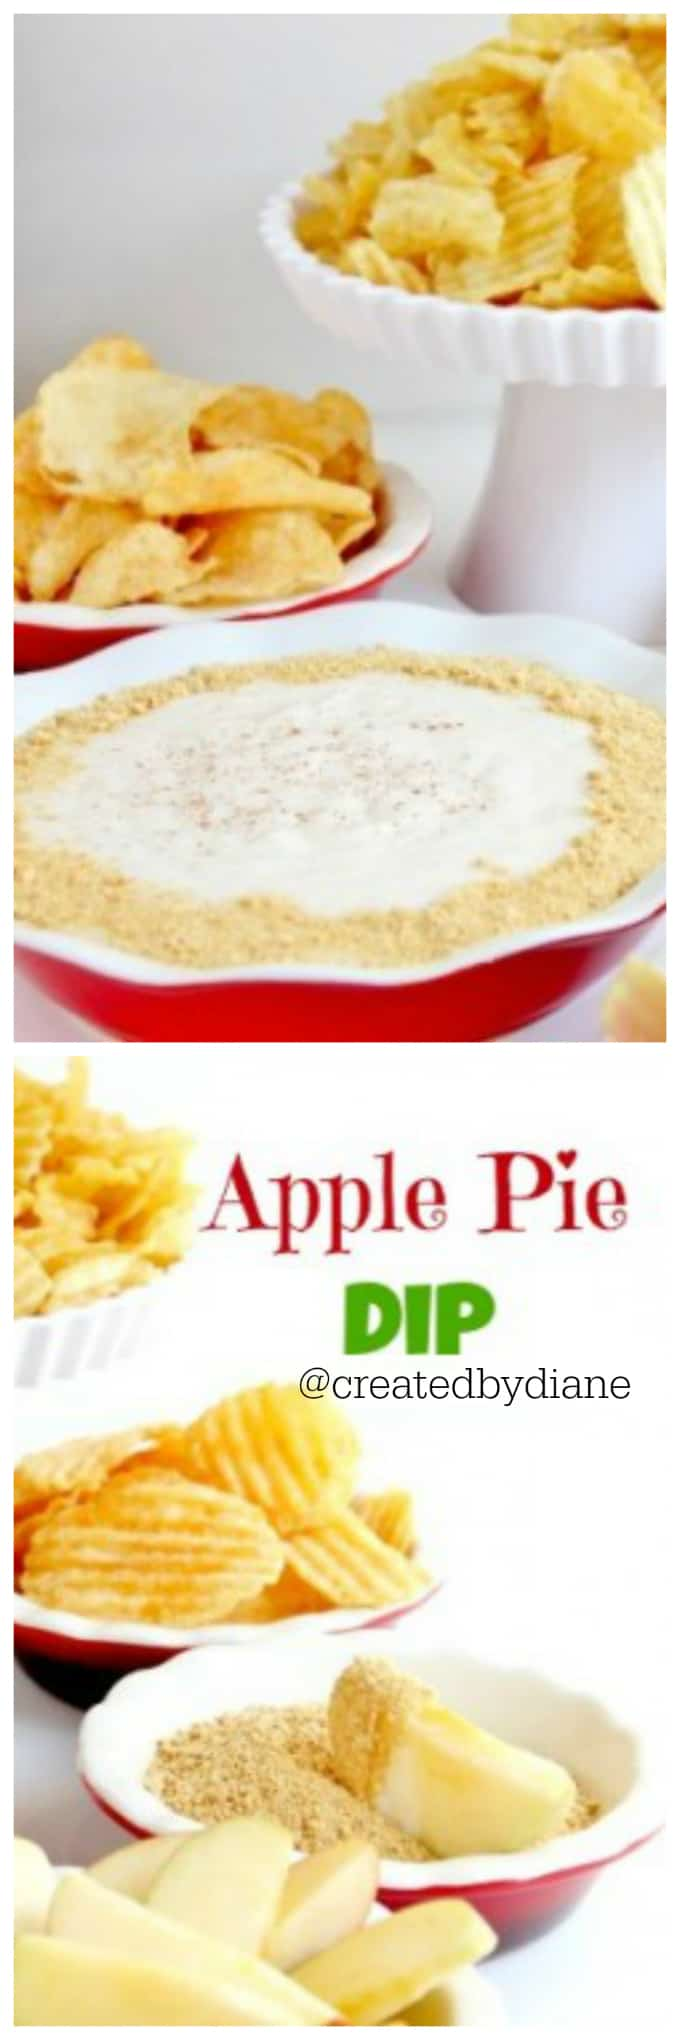 apple pie dip @createdbydiane